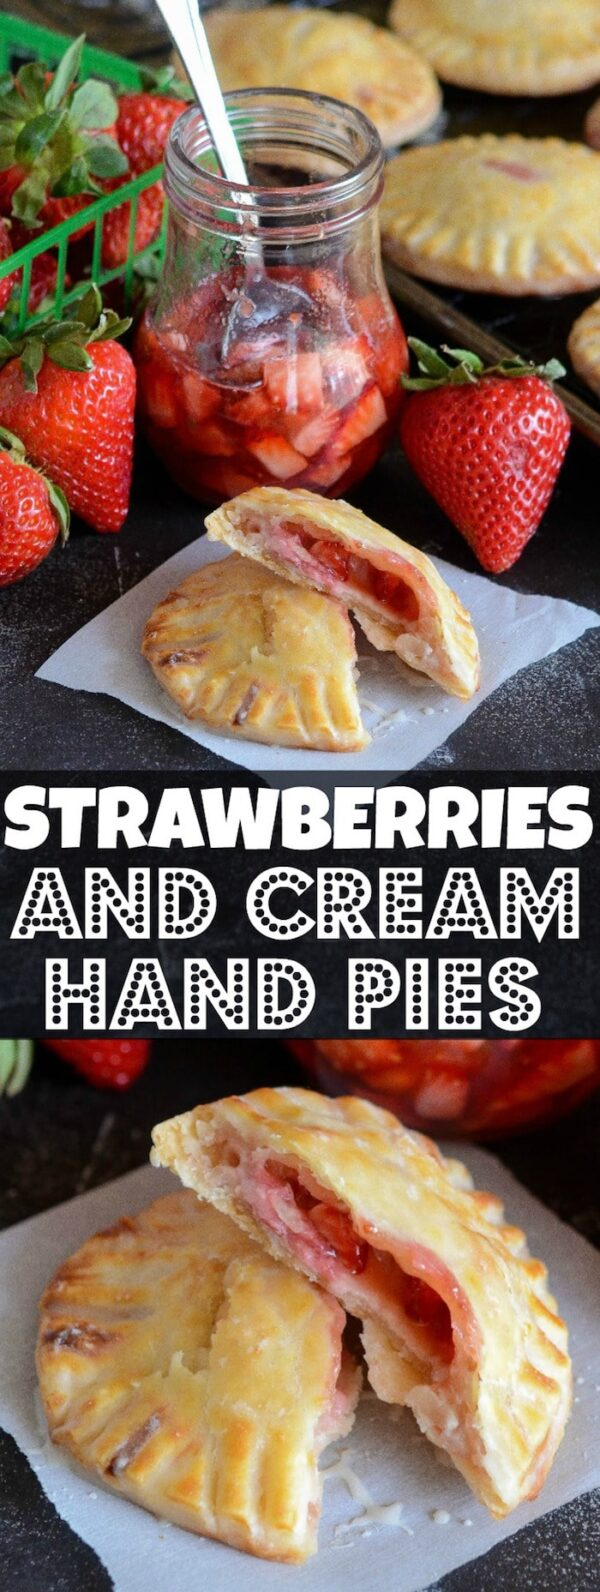 Strawberries & Cream Hand Pies are individually glazed small pies stuffed with strawberry preserves, fresh strawberries and sweetened vanilla cream cheese.